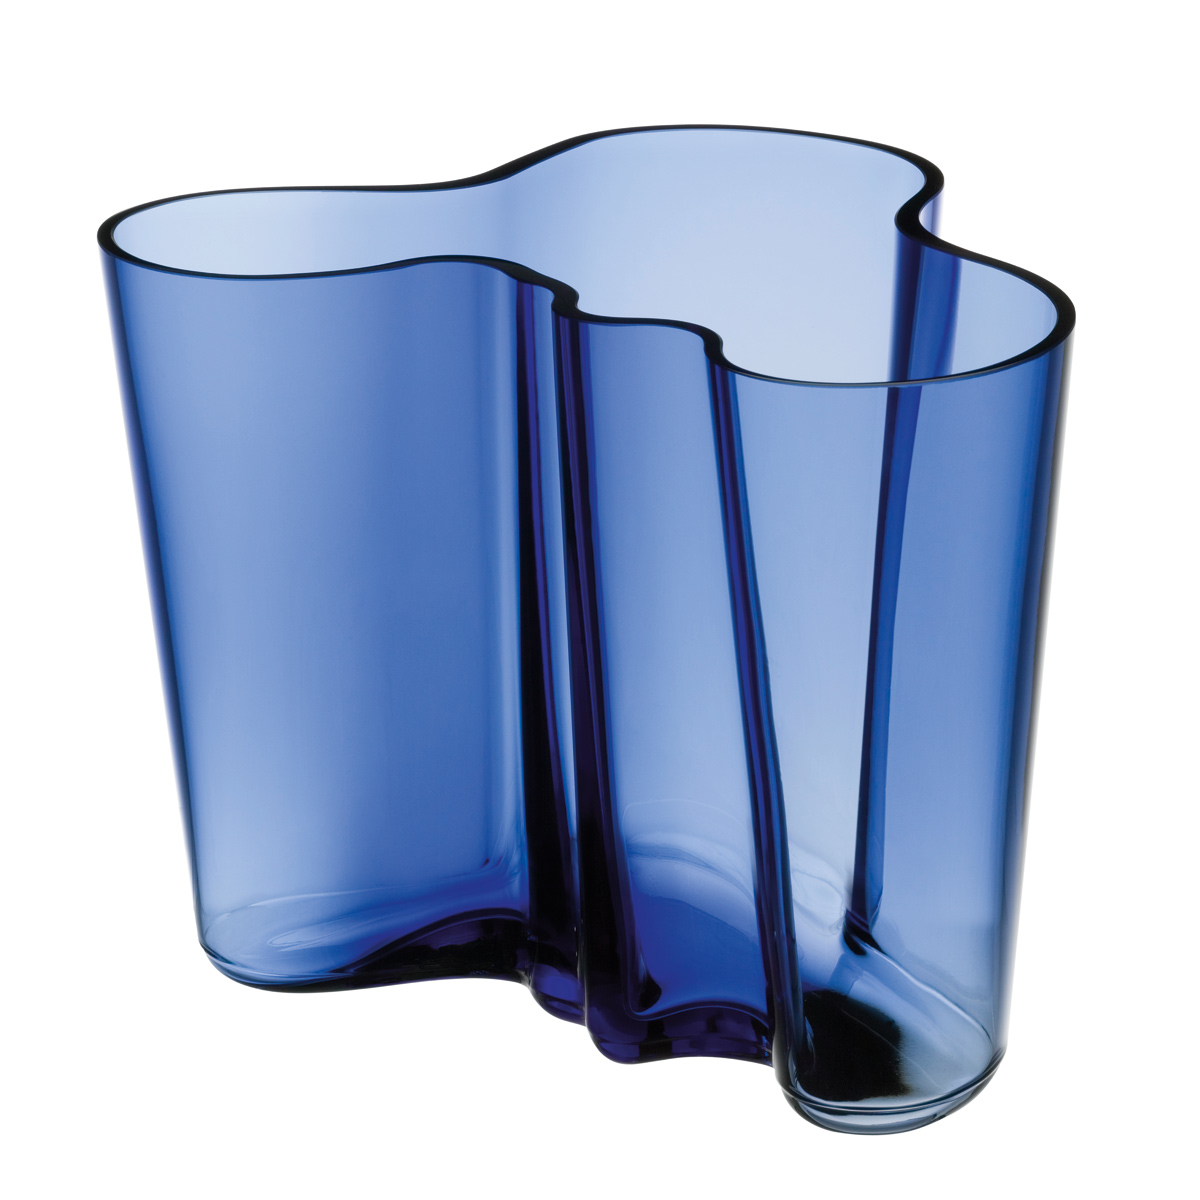 iittala aalto ultramarine 39 finland 100 39 vase 6 1 4 new arrivals. Black Bedroom Furniture Sets. Home Design Ideas